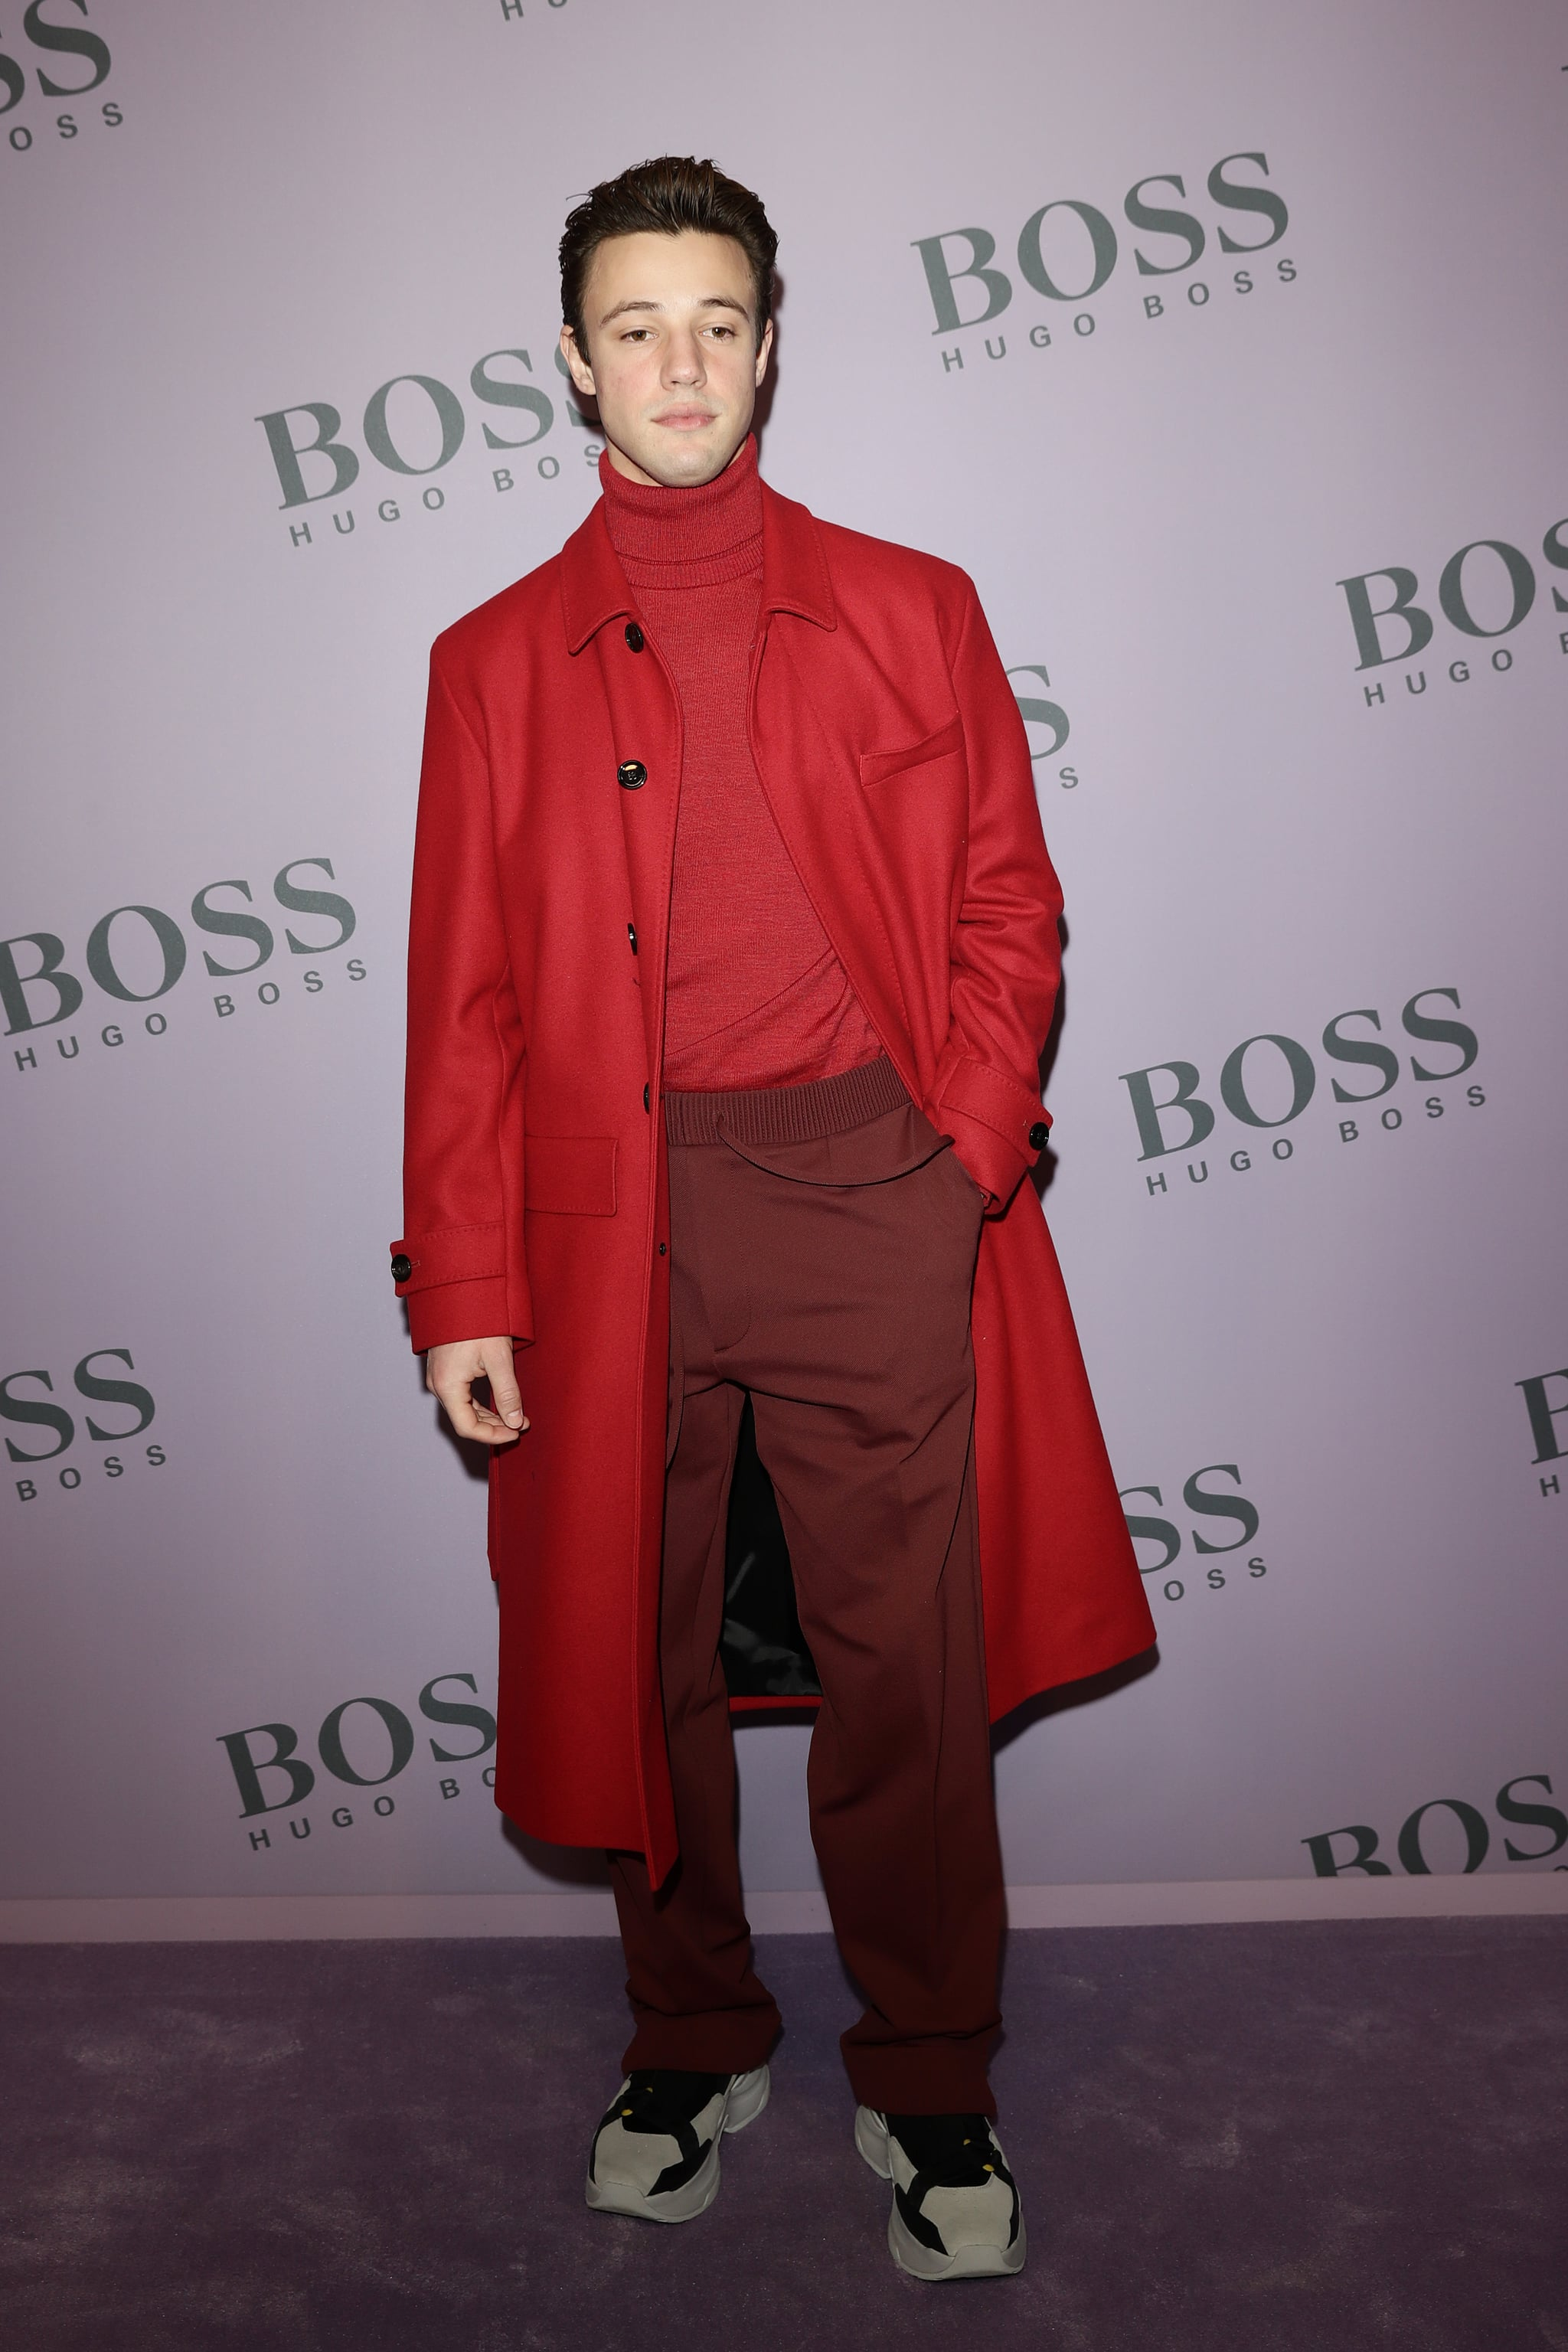 Cameron Dallas At The Boss Fall 2020 Show The Best Celebrity Style At Fashion Week Autumn 2020 Popsugar Fashion Uk Photo 146